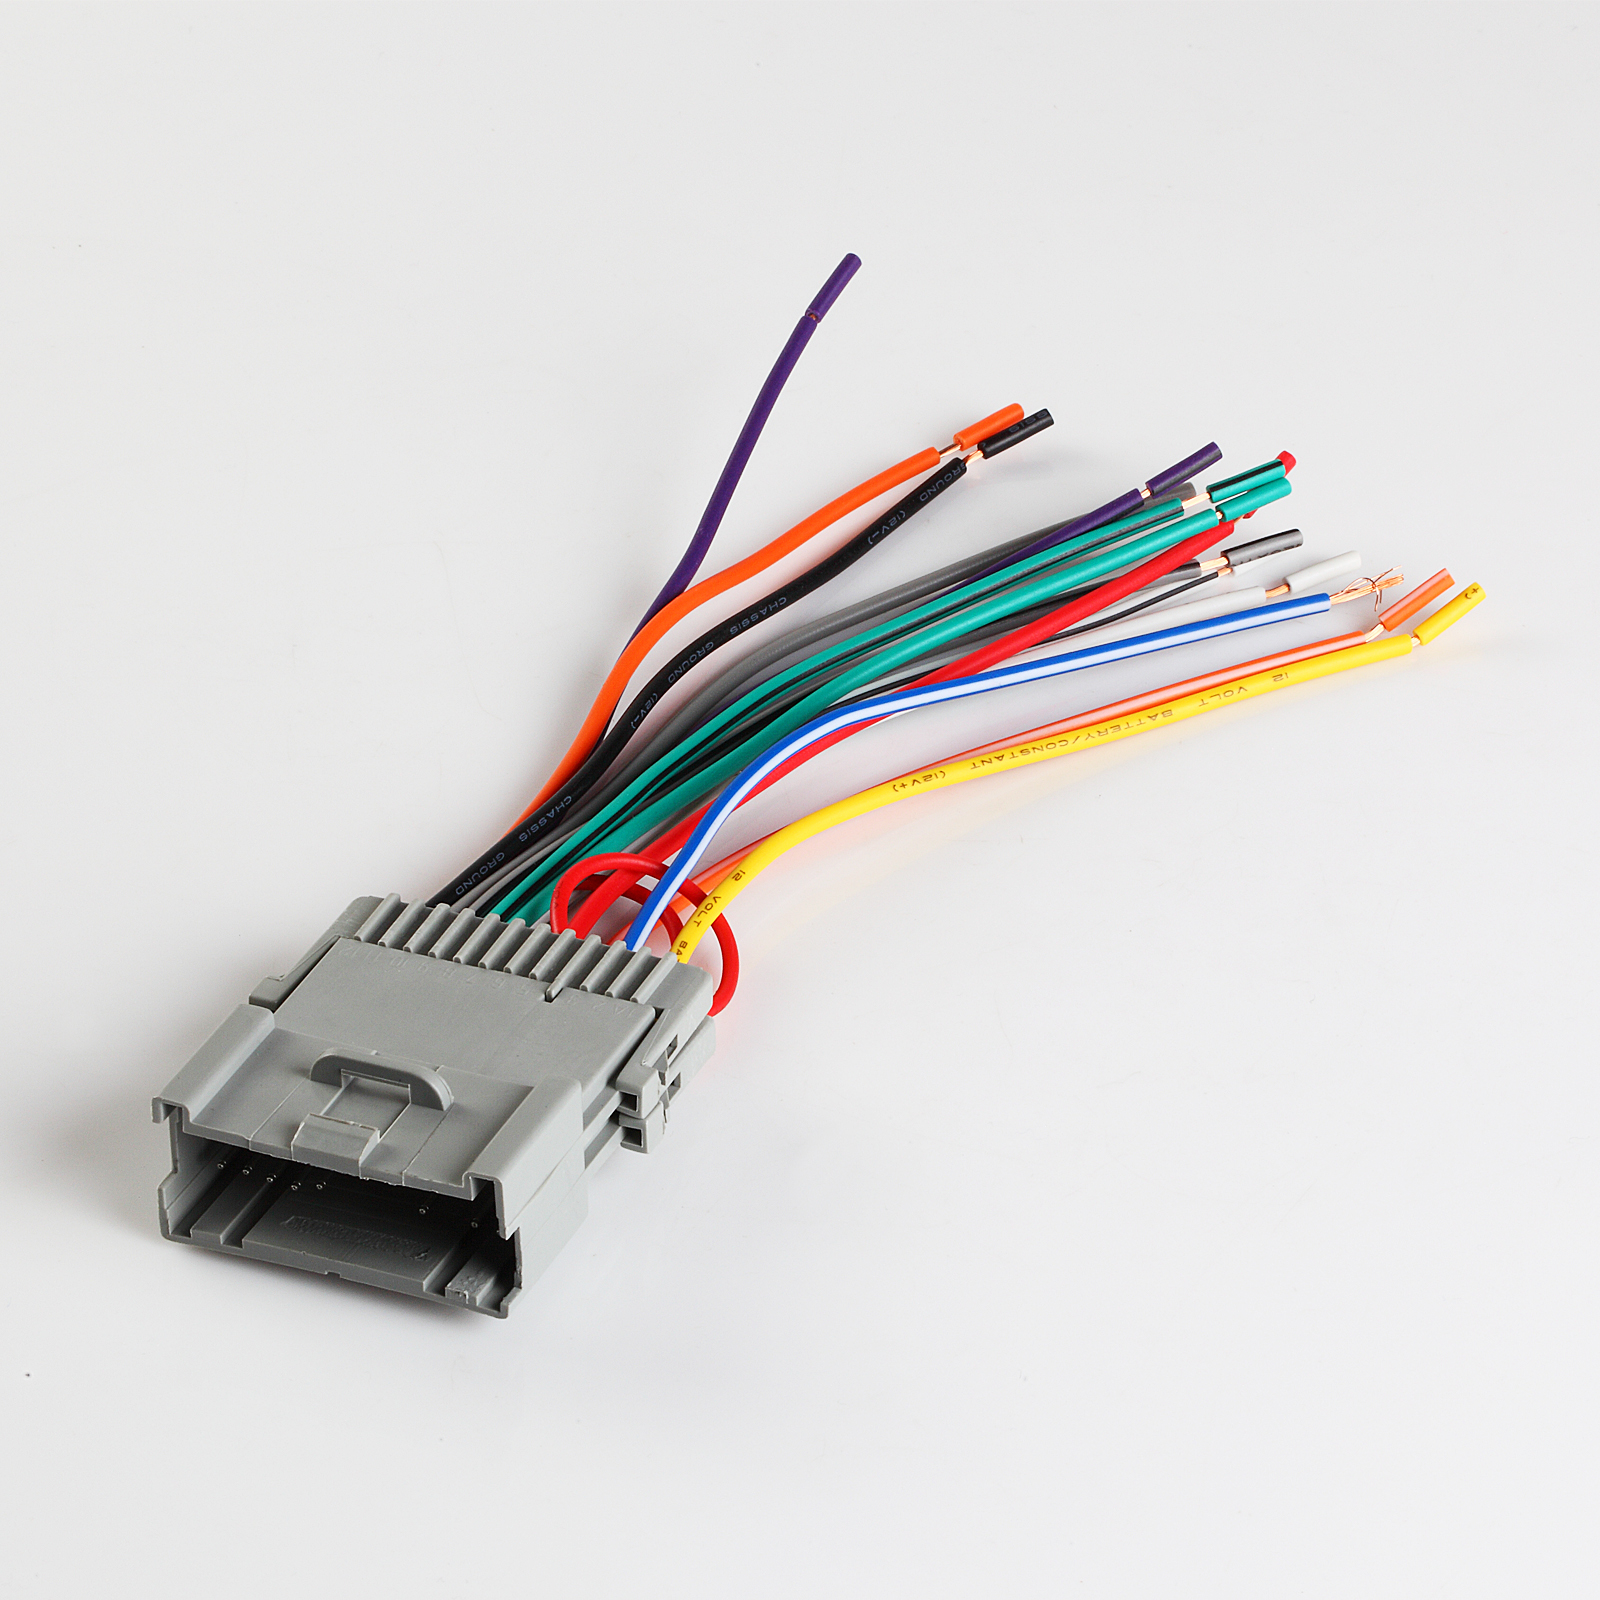 hight resolution of standard wiring harness with basic color codes metra 702002 raptor gm 4003 2000 2005 saturn in